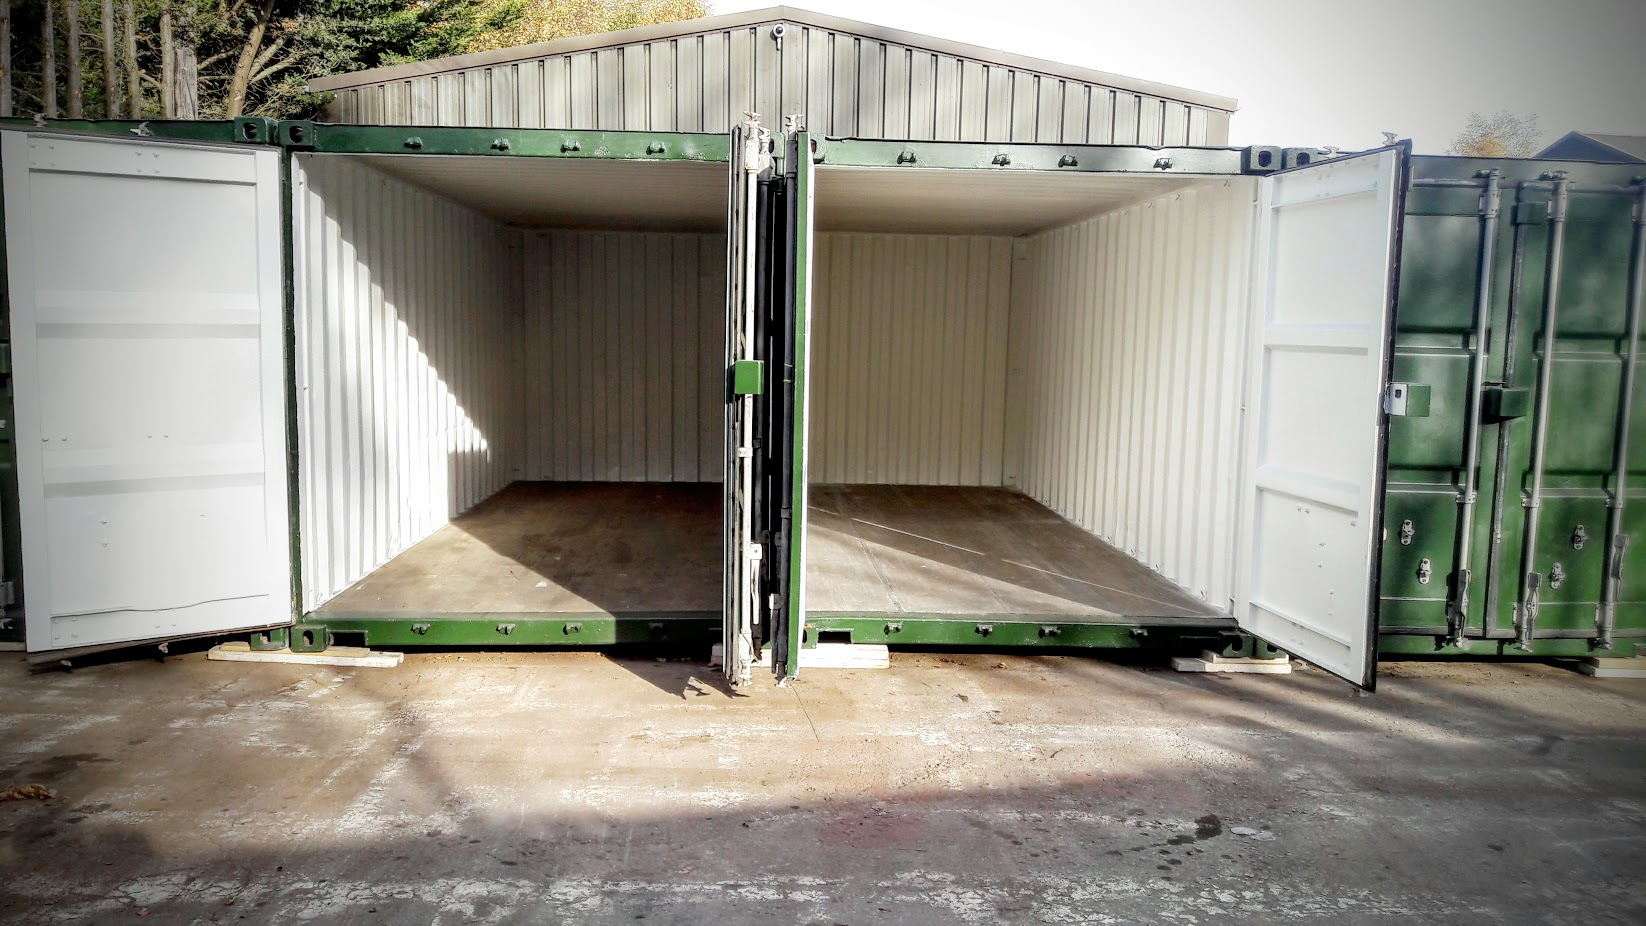 2 Completely Refurbished Blast Cleaned To Bare Metal And Professionally  Recoated, These Containers Have Also